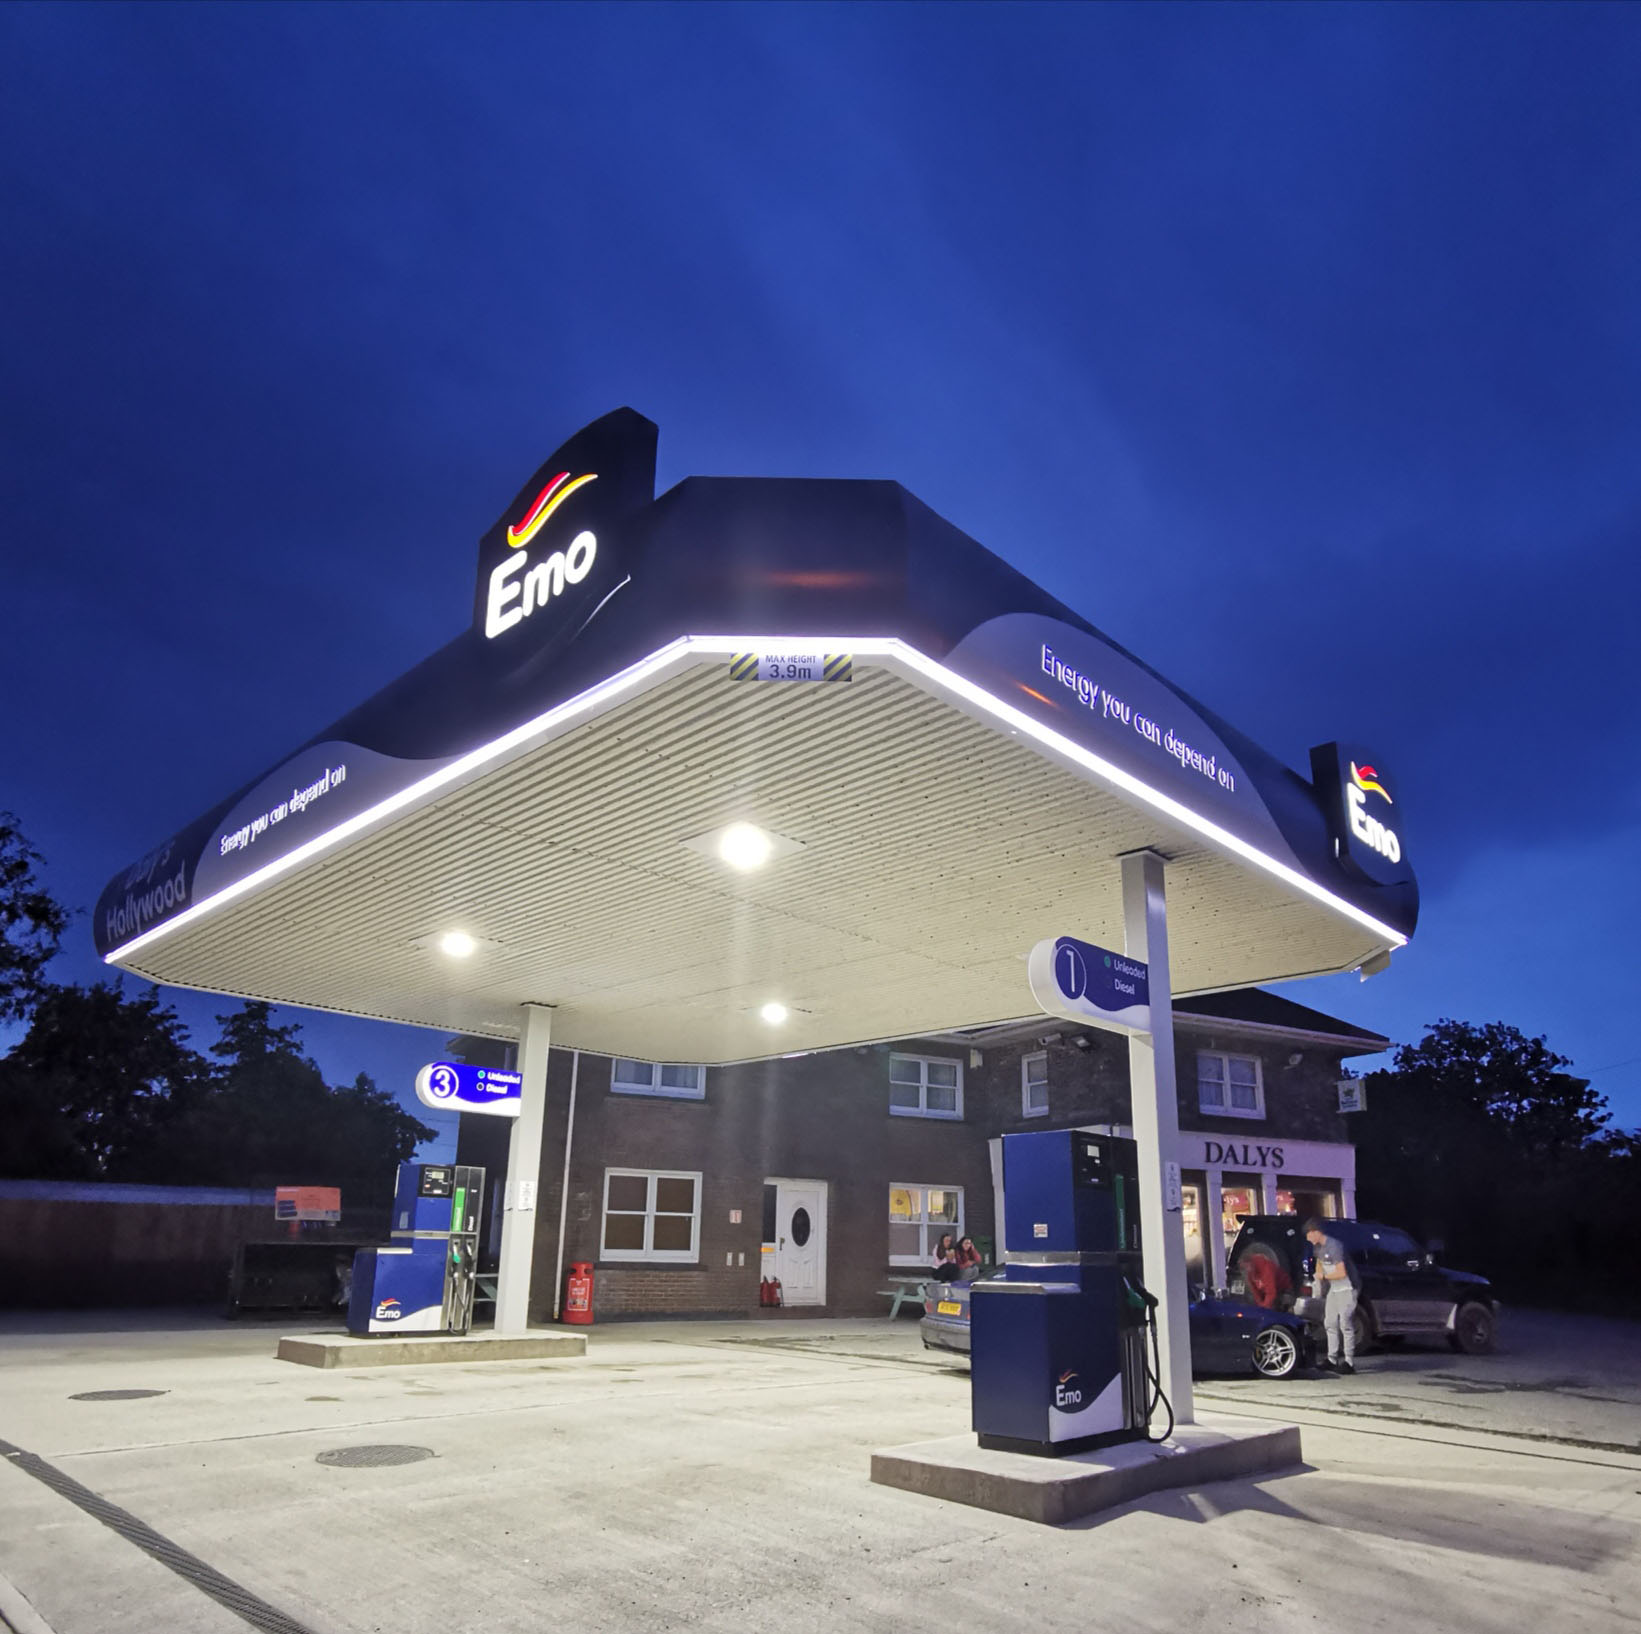 Hollywood Lights – New Emo branding lights up Daly's Hollywood forecourt and store